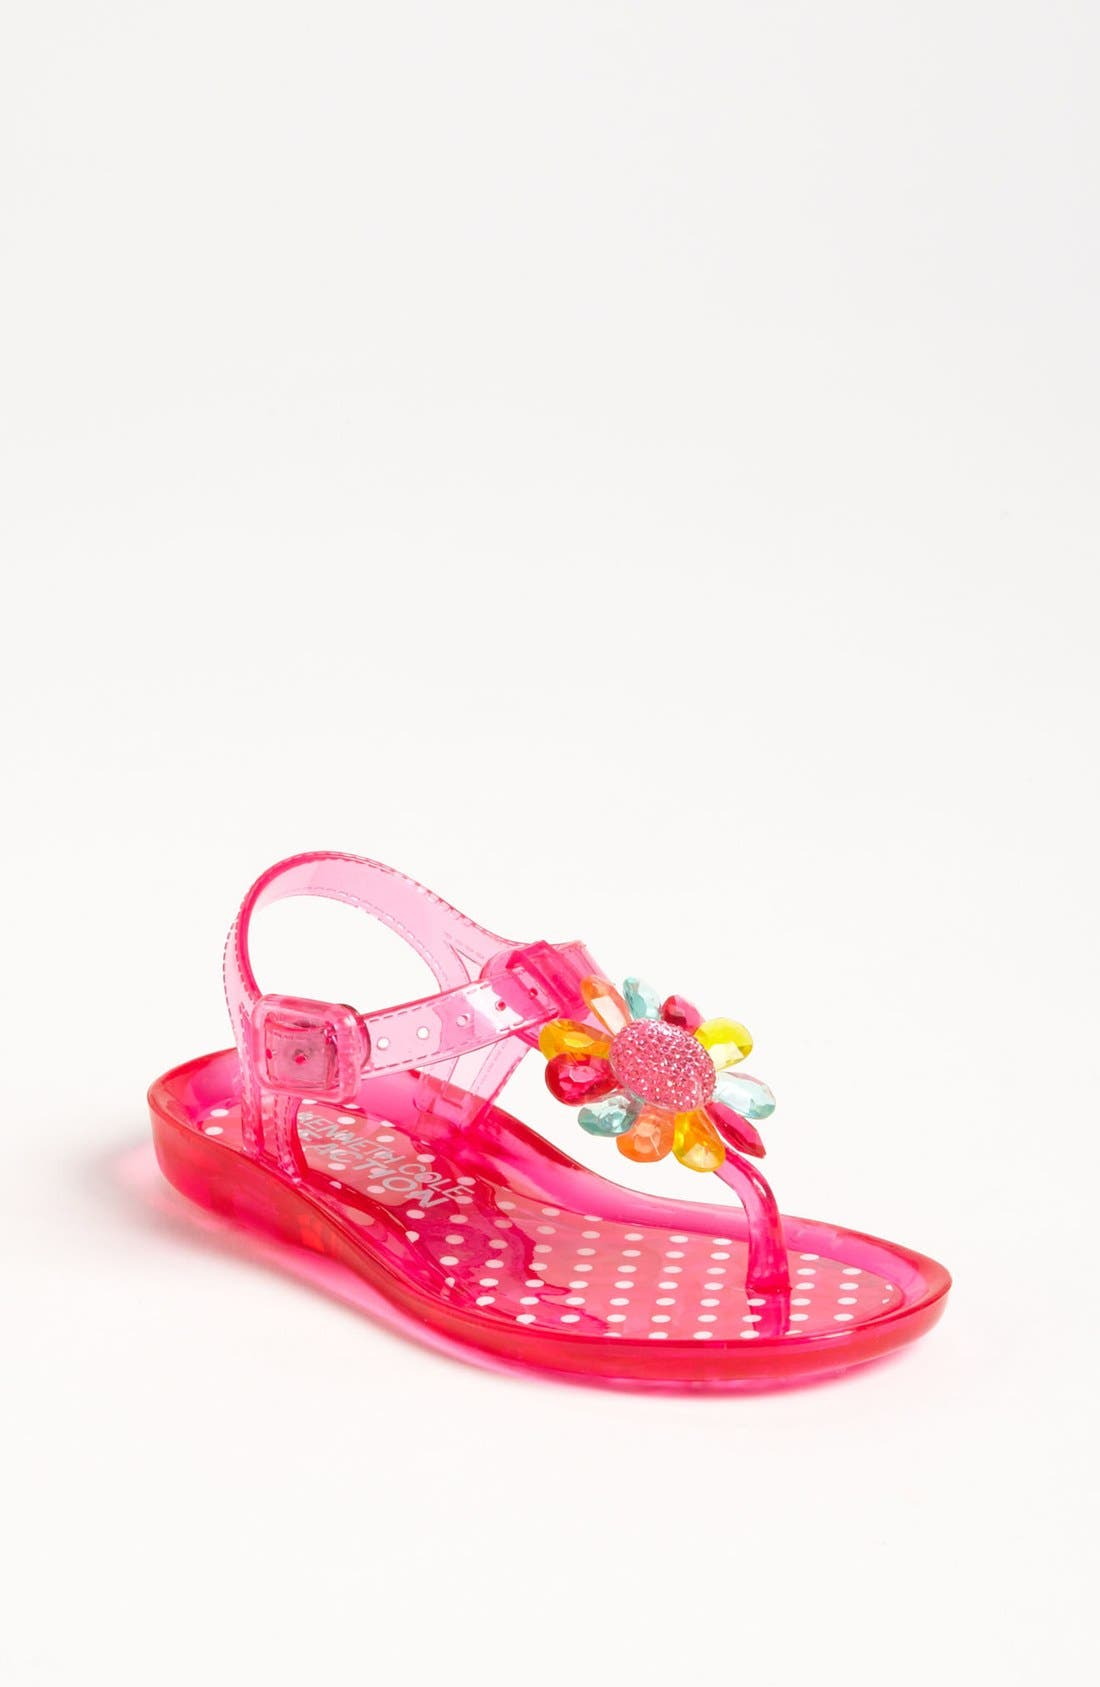 Alternate Image 1 Selected - Kenneth Cole Reaction 'Call The Jelly' Sandal (Walker, Toddler & Little Kid)